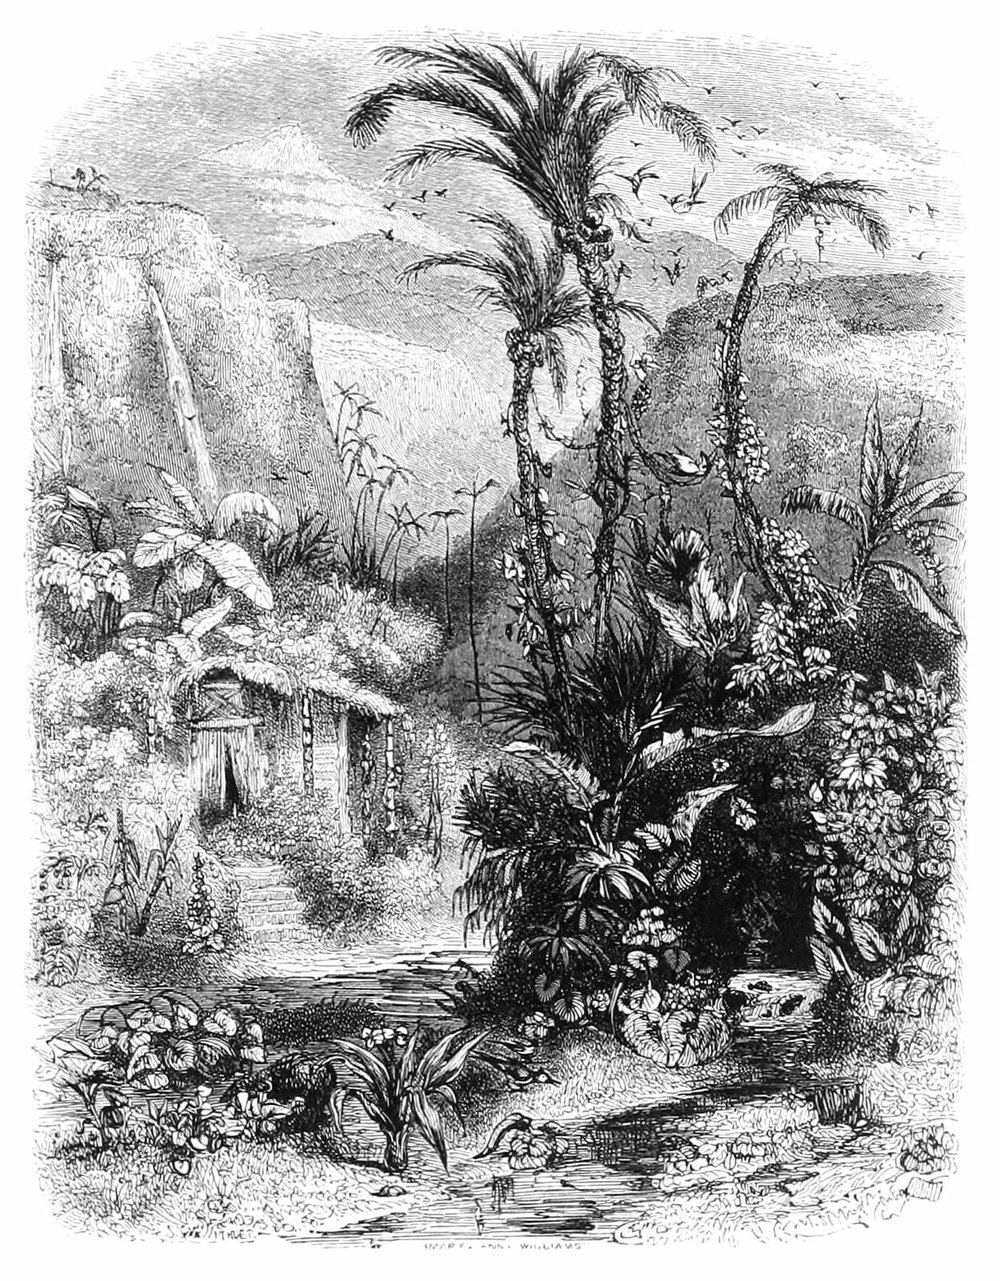 Wood Engraving by Mary Ann Williams of 'The Pariah's Garden at Dawn', by Paul Huet from the book  Paul et Virginie  by Jacques-Henri Bernardin de Saint-Pierre, 1838